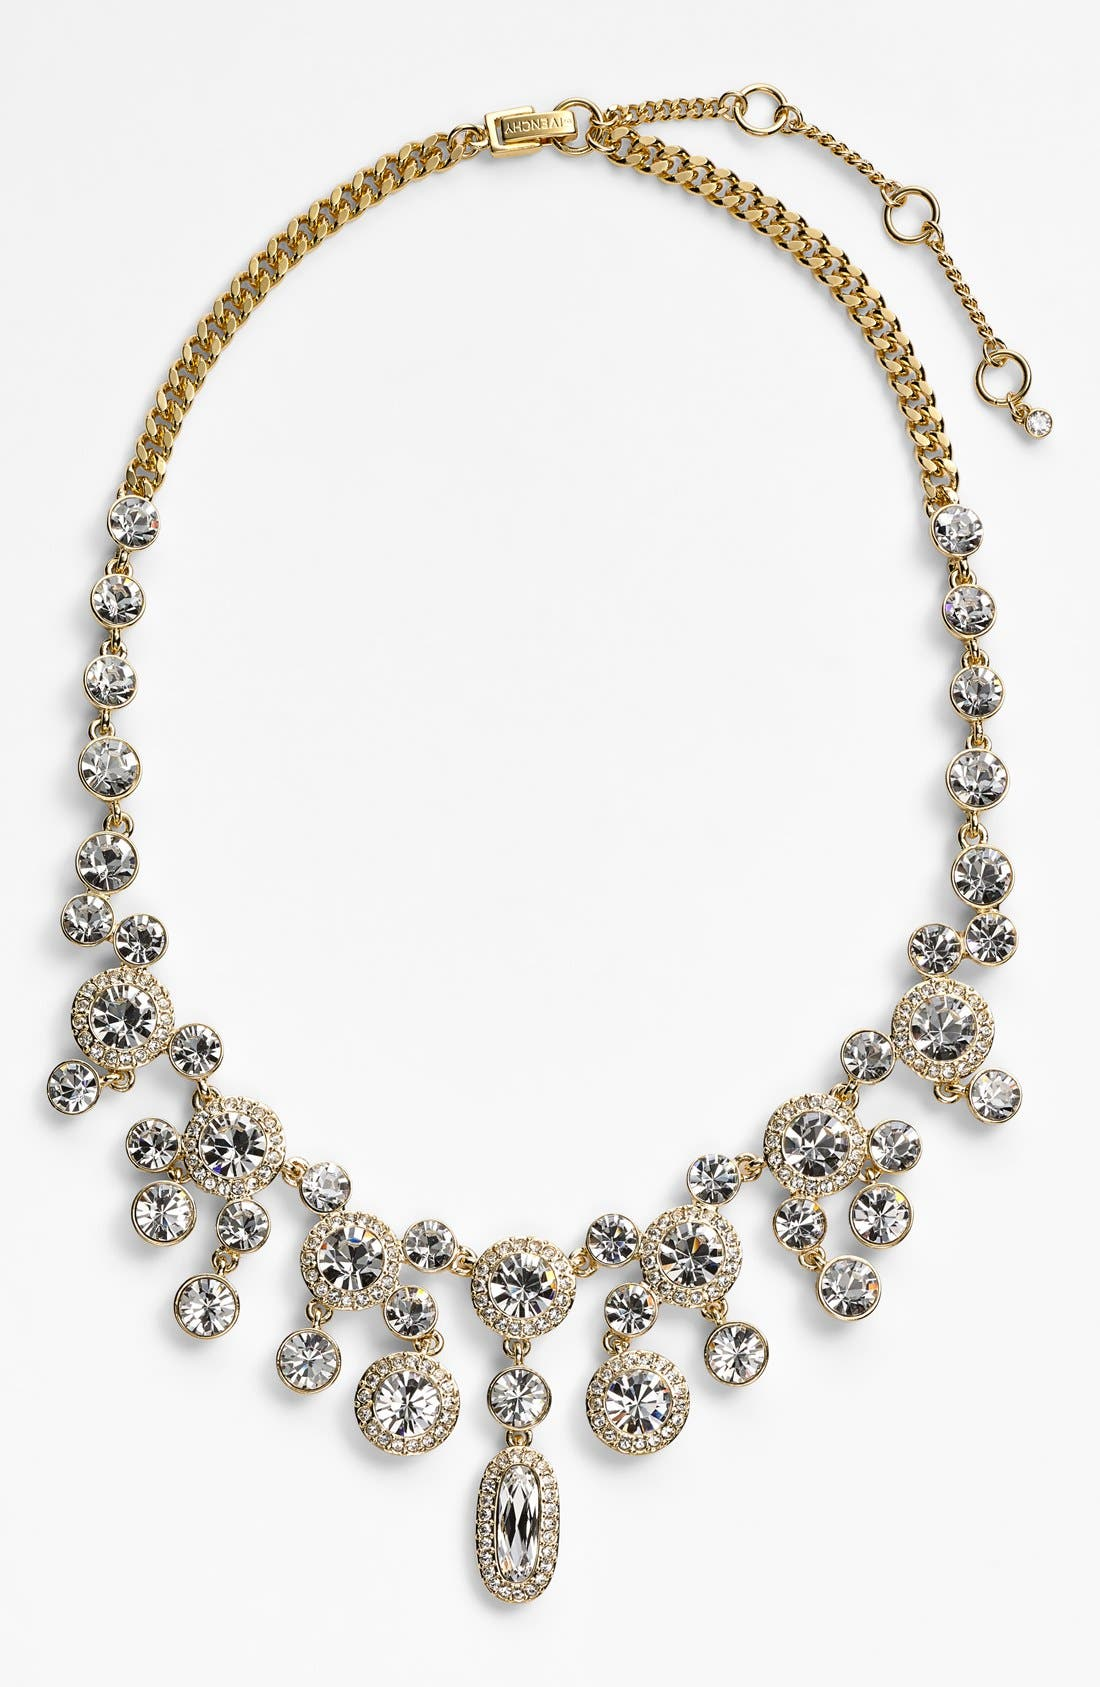 Main Image - Givenchy Crystal Bib Necklace